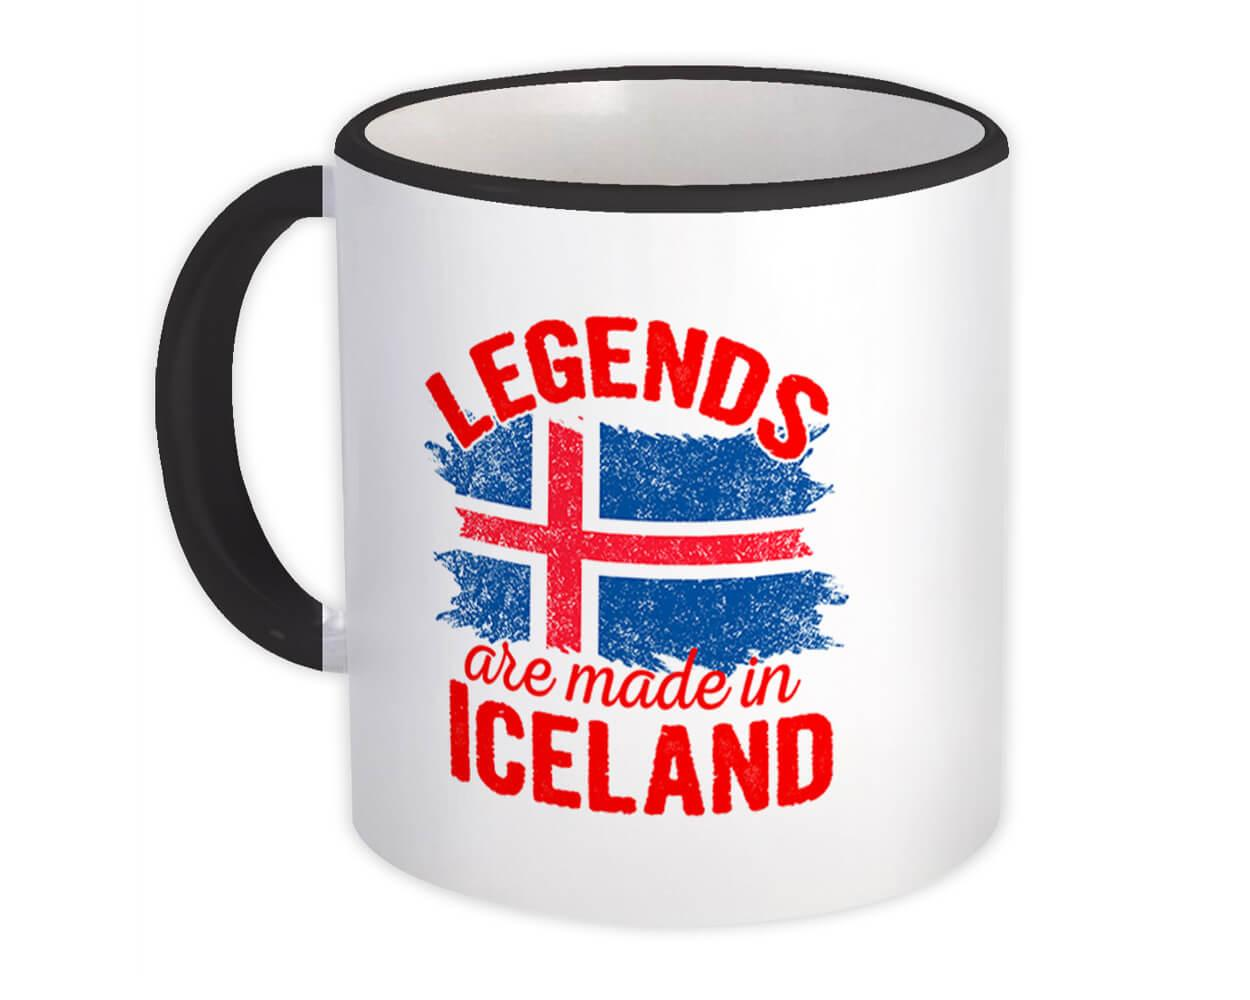 Legends are Made in Iceland : Gift Mug Flag Icelandic Expat Country